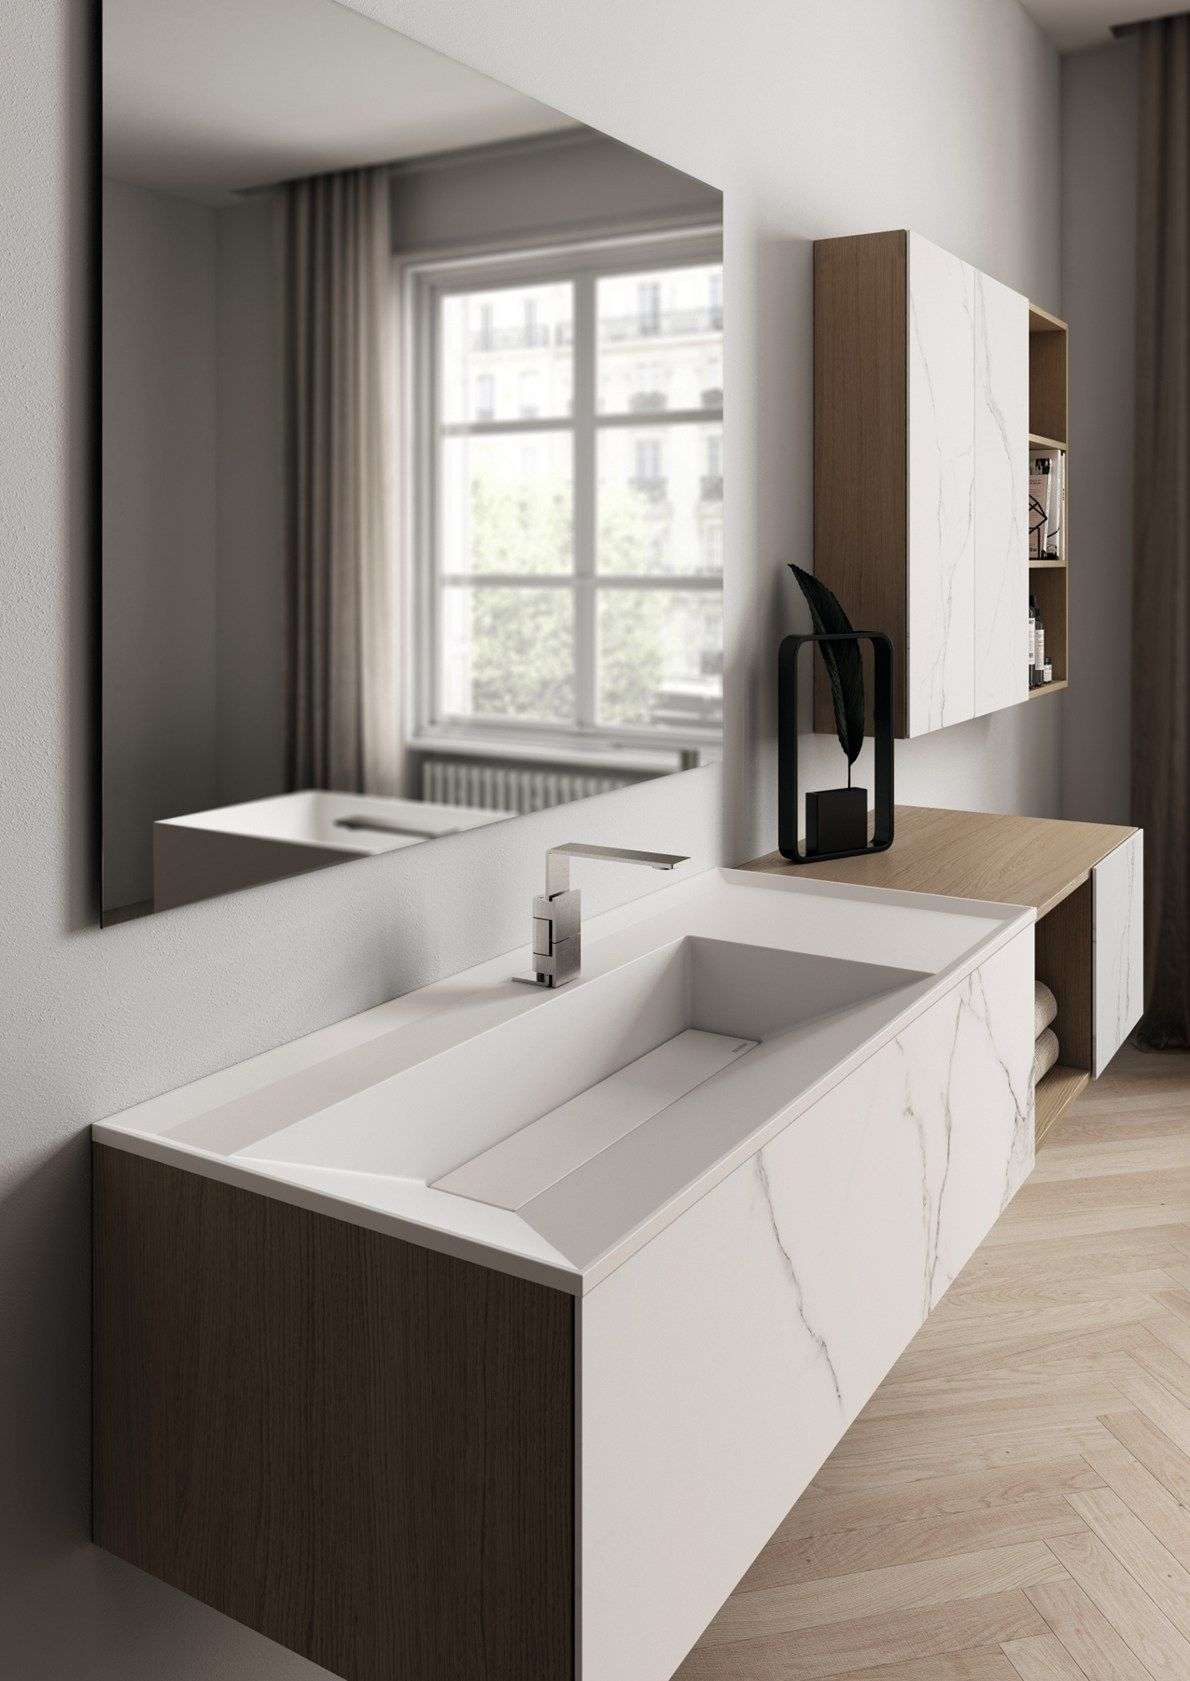 Minimal Bath With Industrial Inspiration Ideagroup Presents Dogma